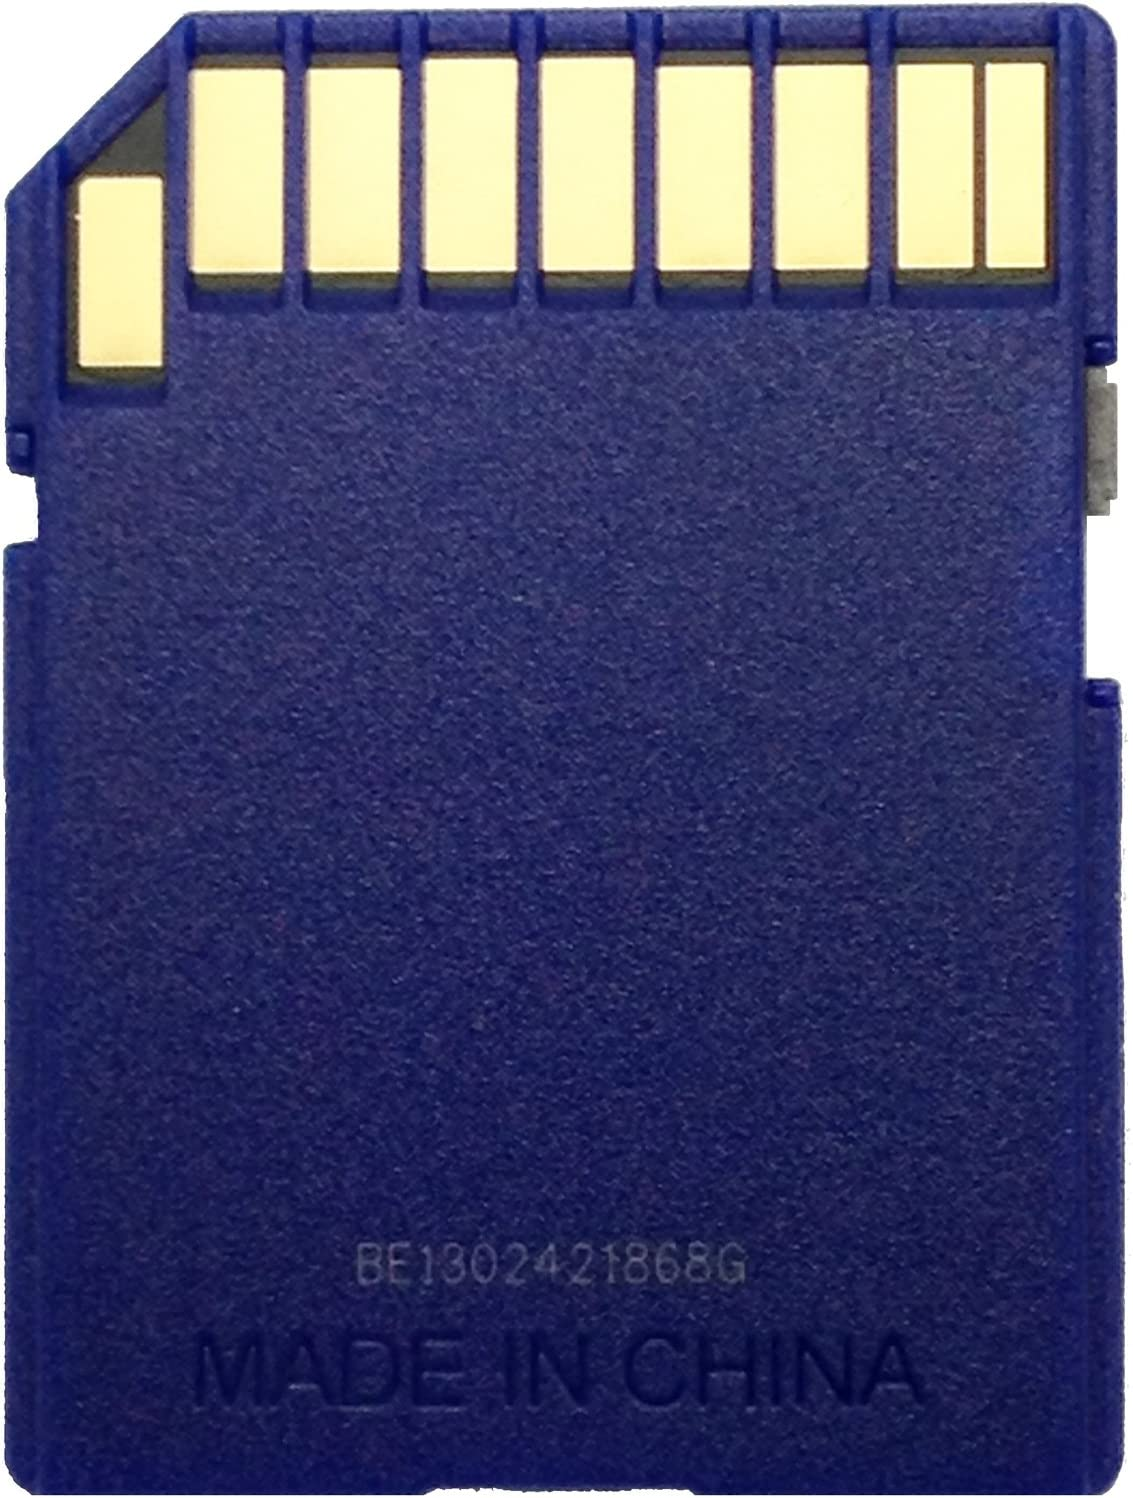 2GB SD Memory Card for HP iPAQ H5550 H5555 H6310 H6315